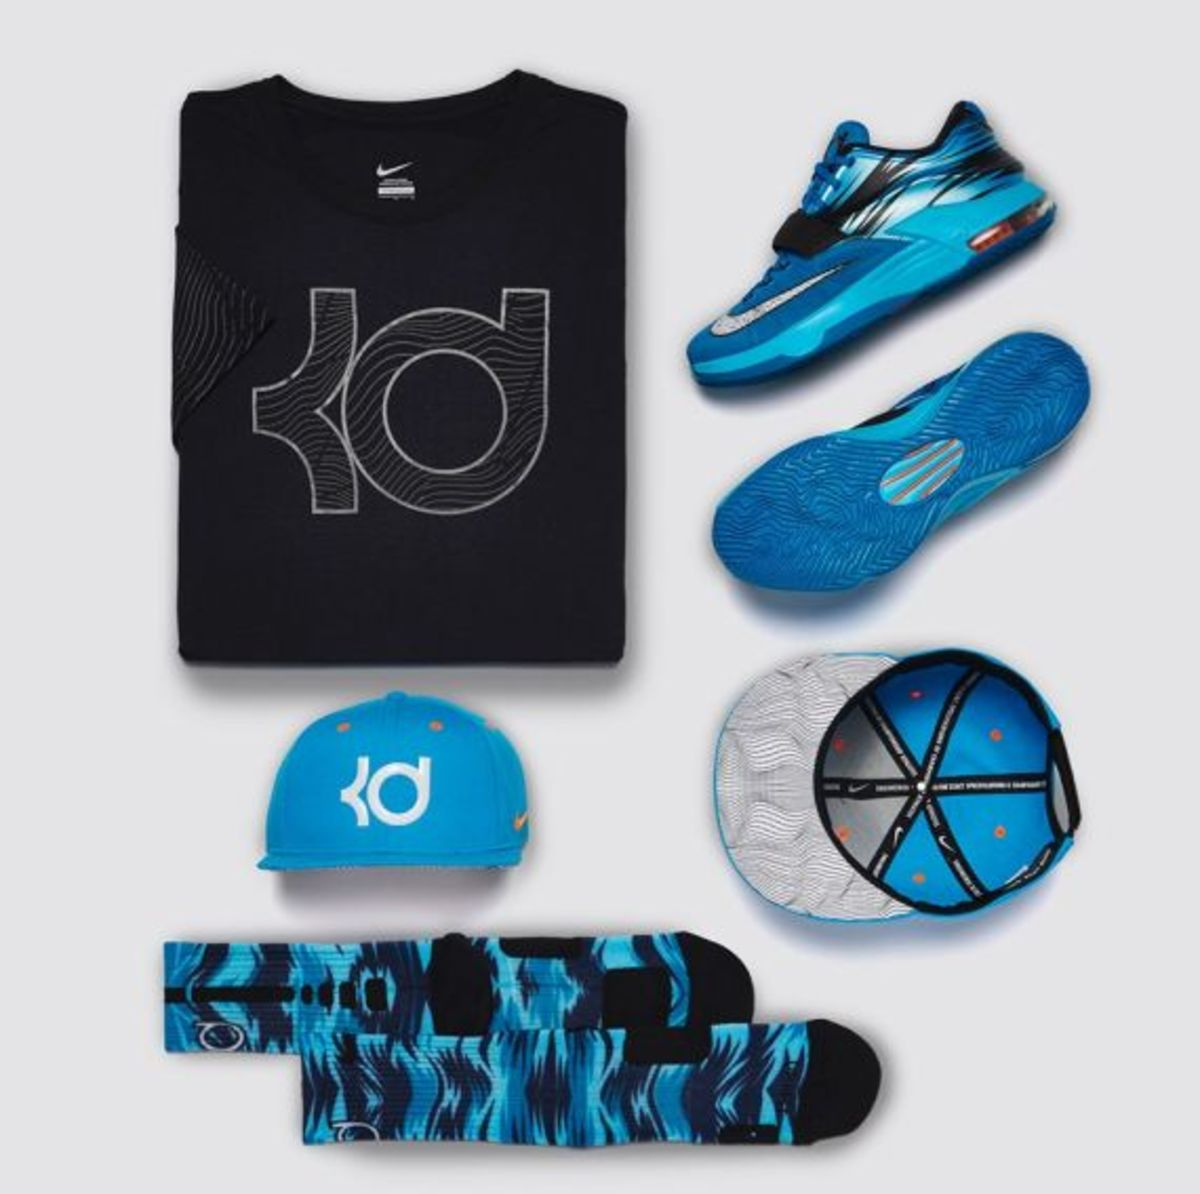 nike-kd-7-lacquer-blue-07